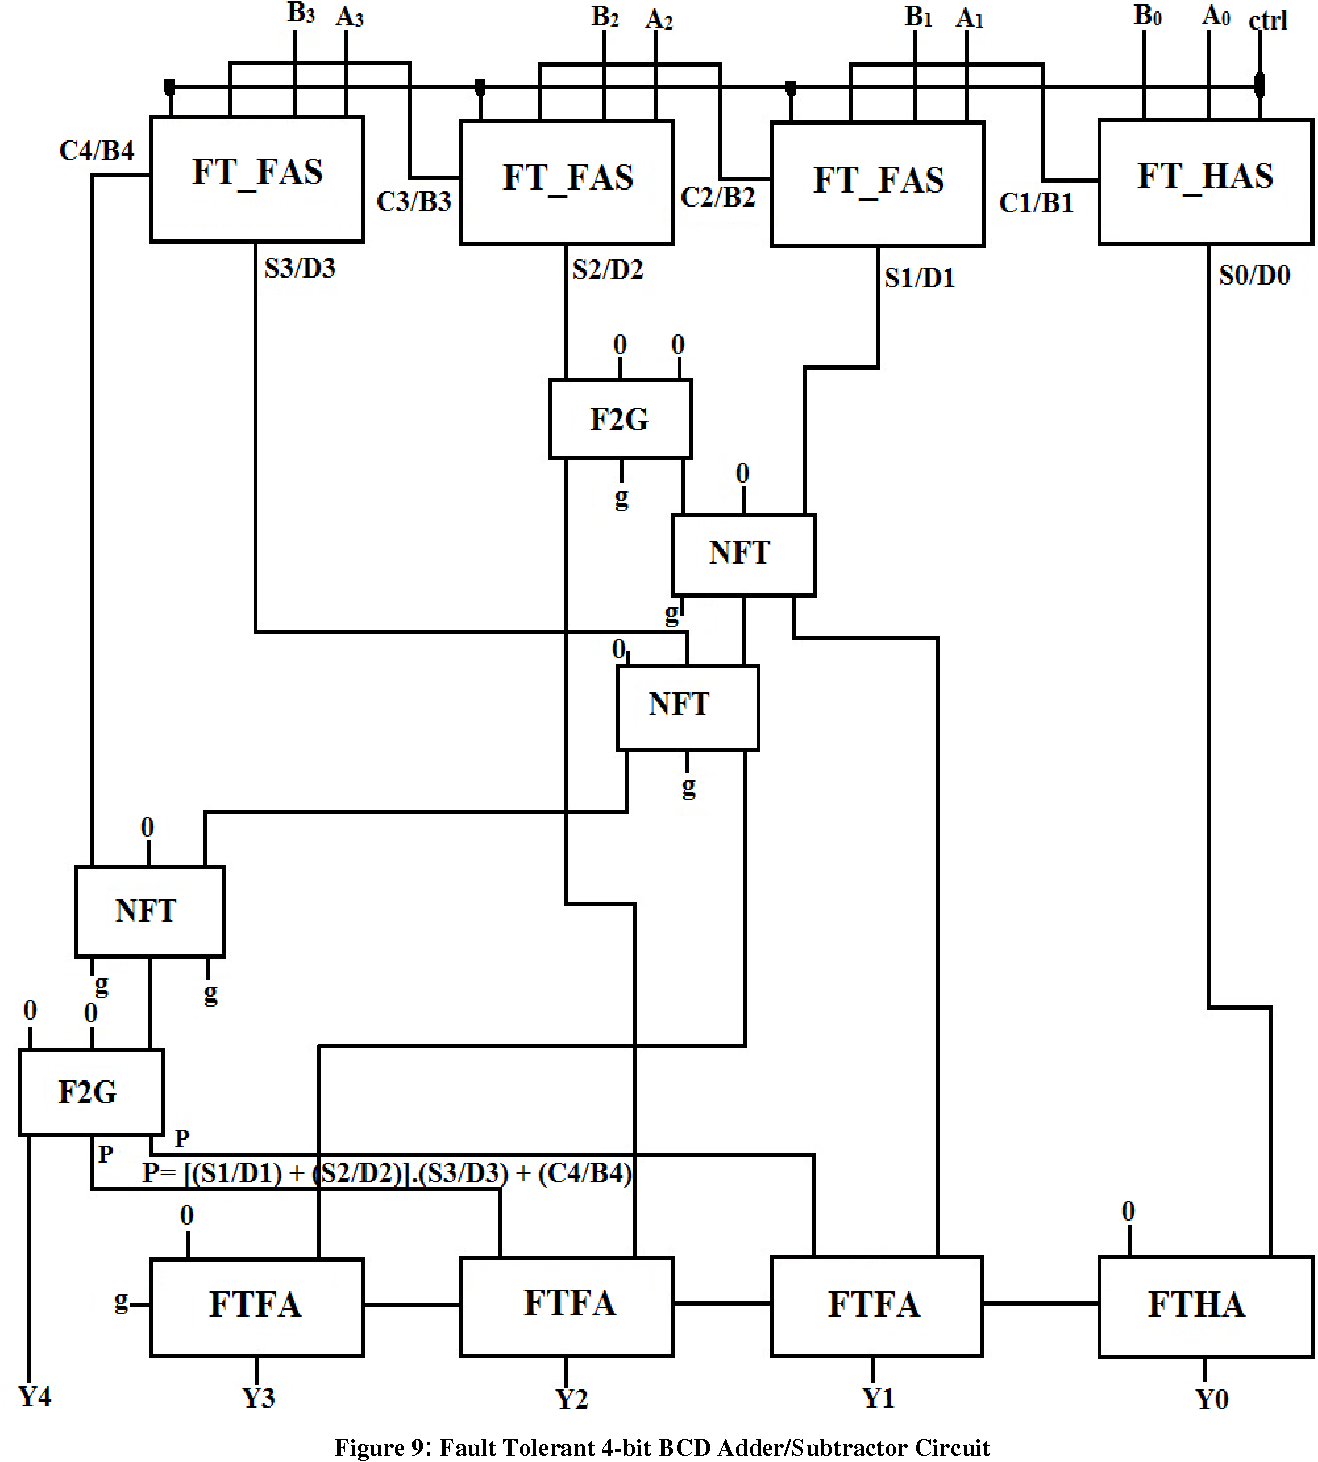 Design Of Efficient Reversible Fault Tolerant Adder Subtractor Diagram Figure 9